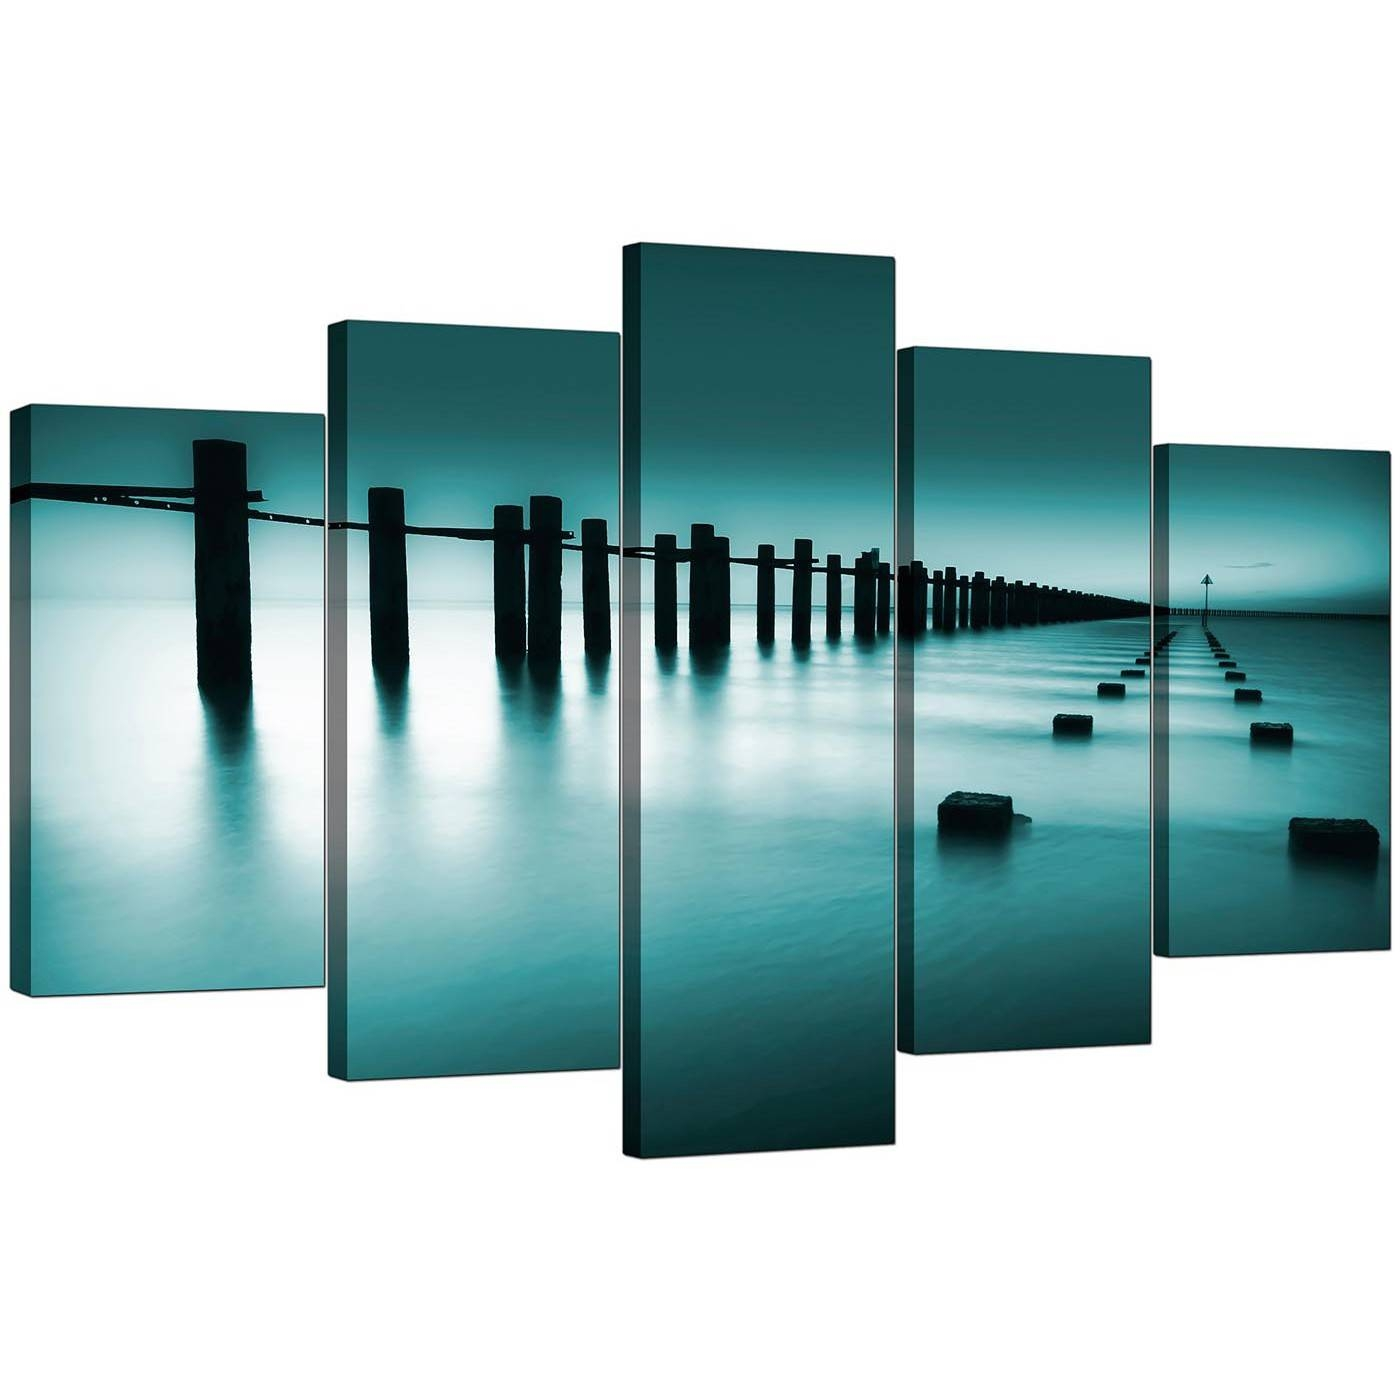 Extra Large Sea Canvas Wall Art Five Panel In Teal With Regard To Most Current Large Teal Wall Art (View 16 of 20)